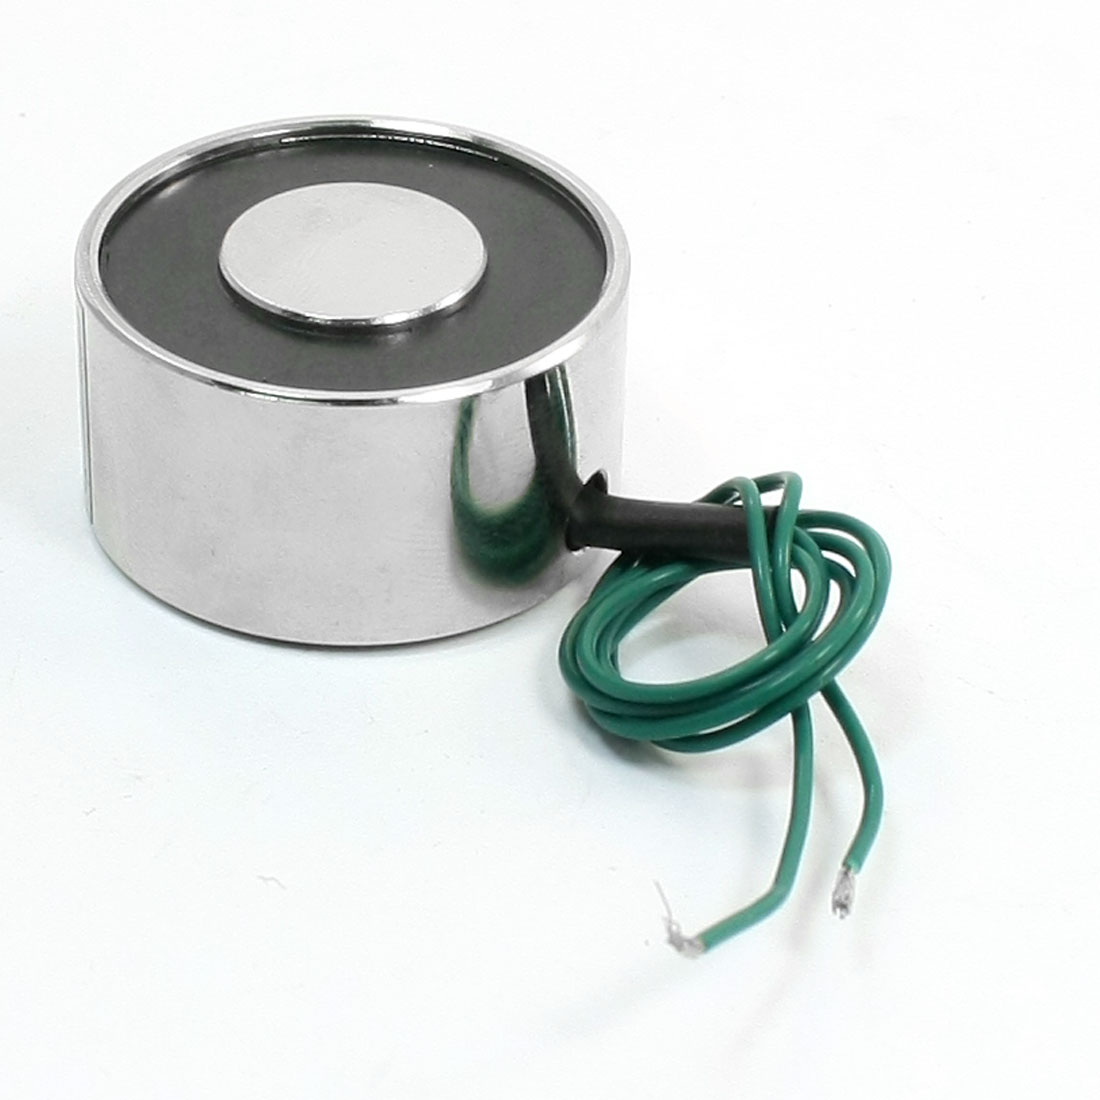 18Kg-39-7LB-12V-34mm-Electric-Lifting-Magnet-Electromagnet-Solenoid-Lift-Holding